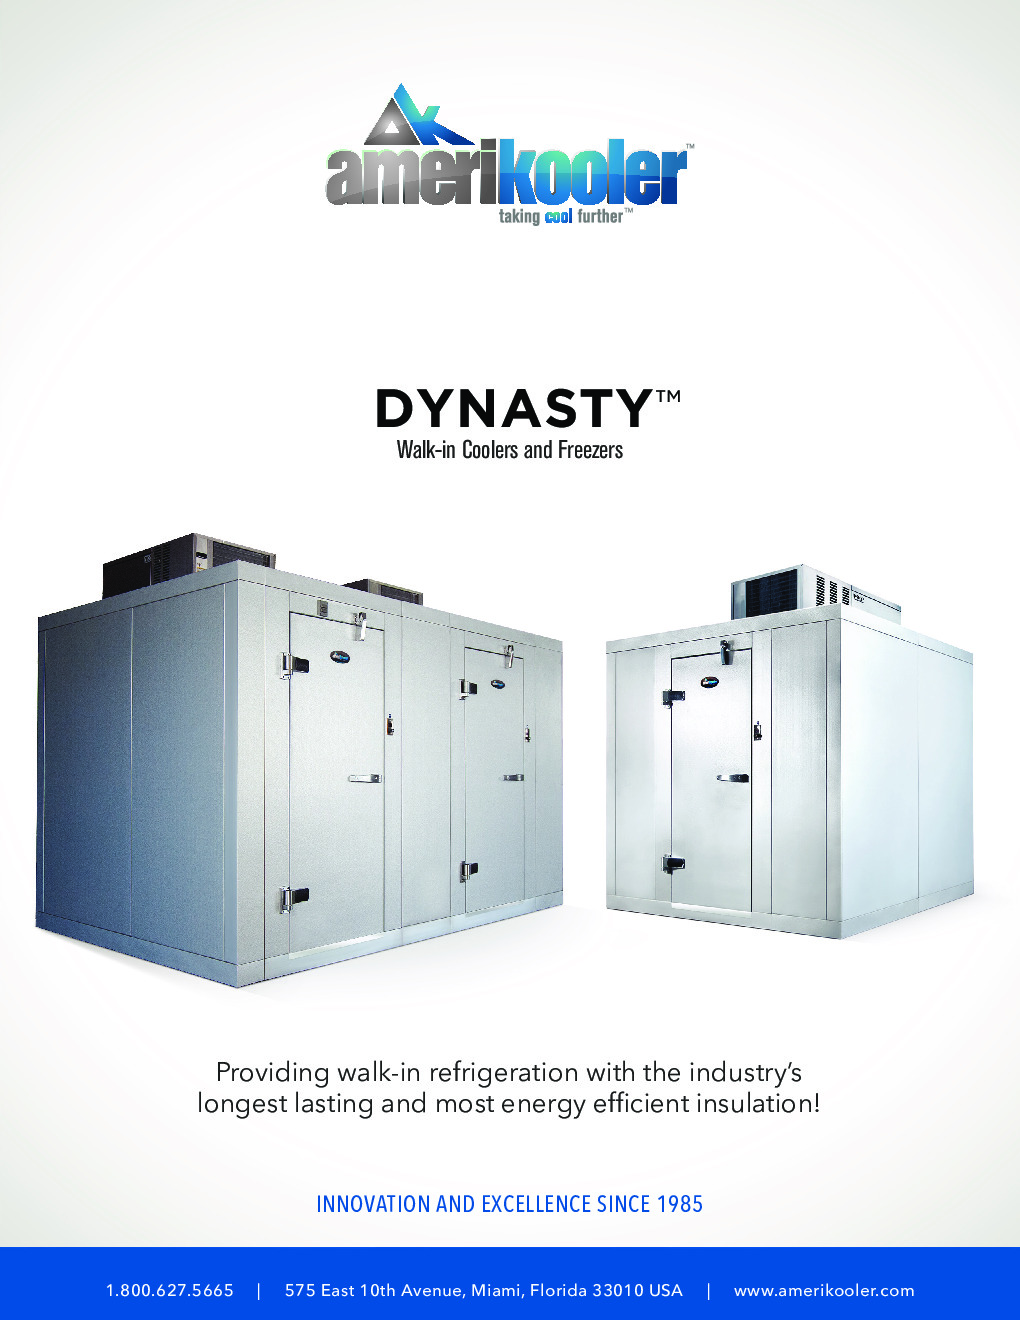 AmeriKooler DW081377F-6/7-RM 8' X 13' Walk-In Cooler, 7' L Cooler with Floor and 6' L Freezer, Remote